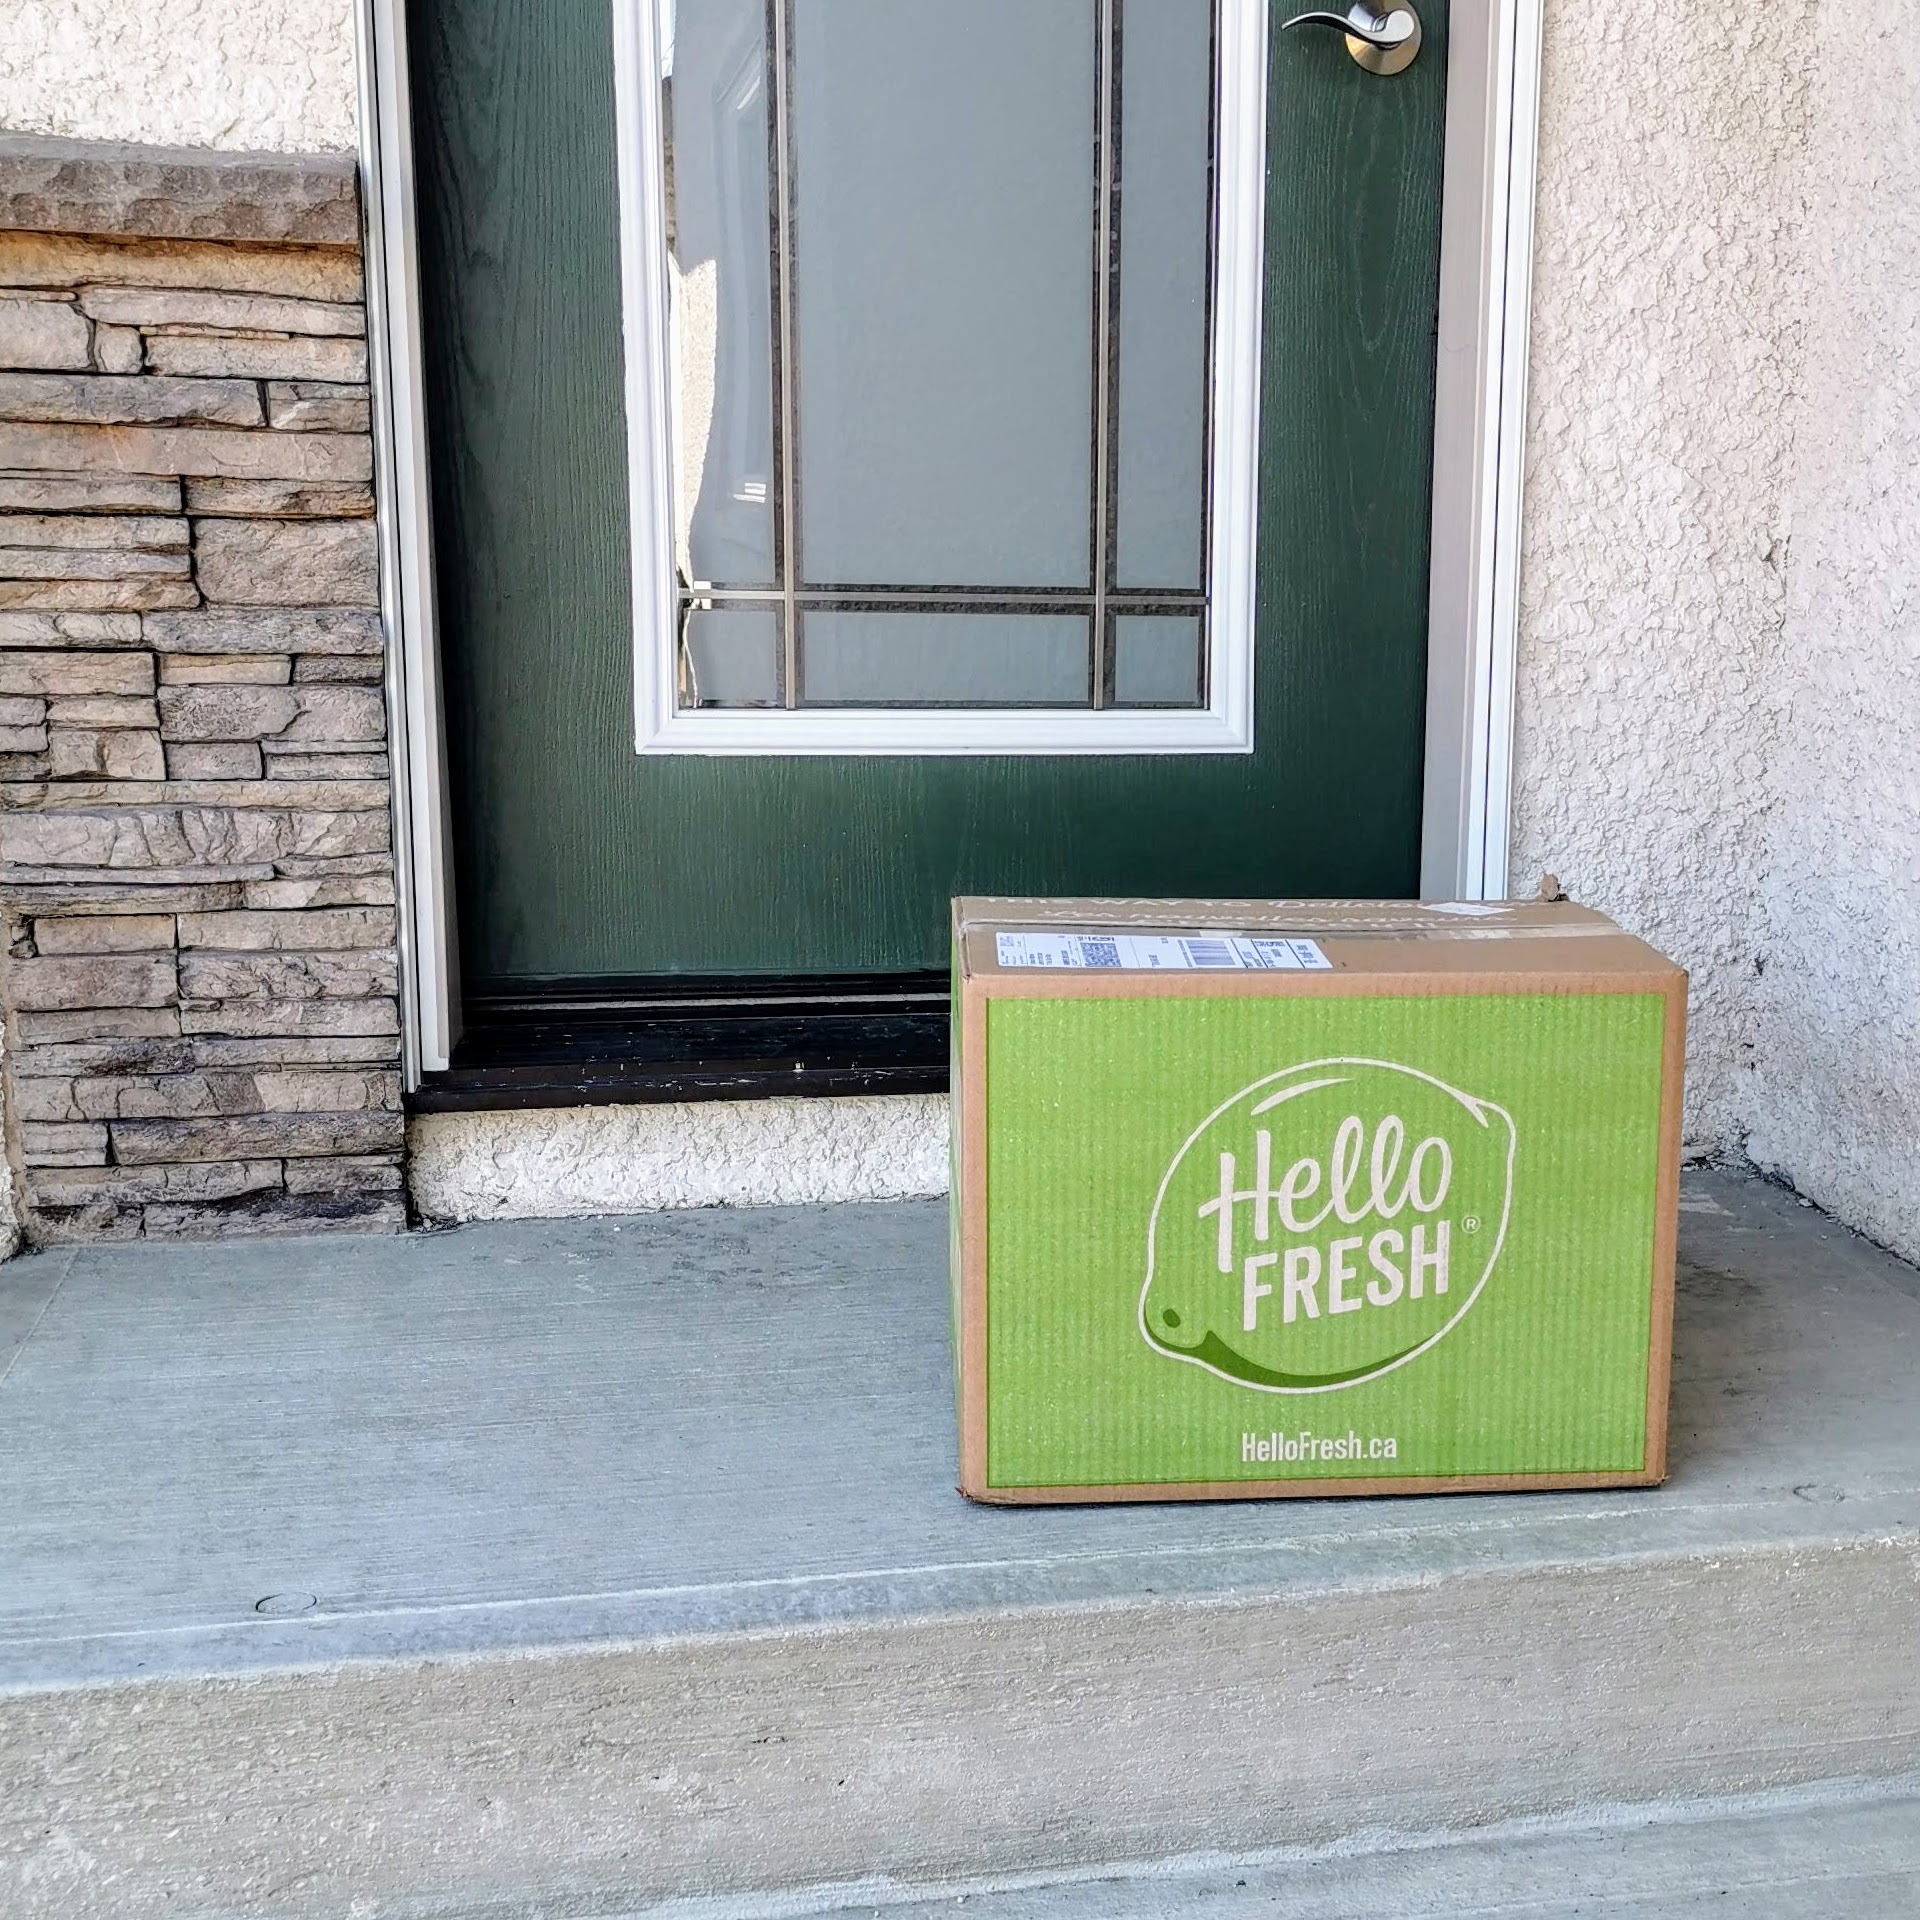 The Hello Fresh Box Delivered